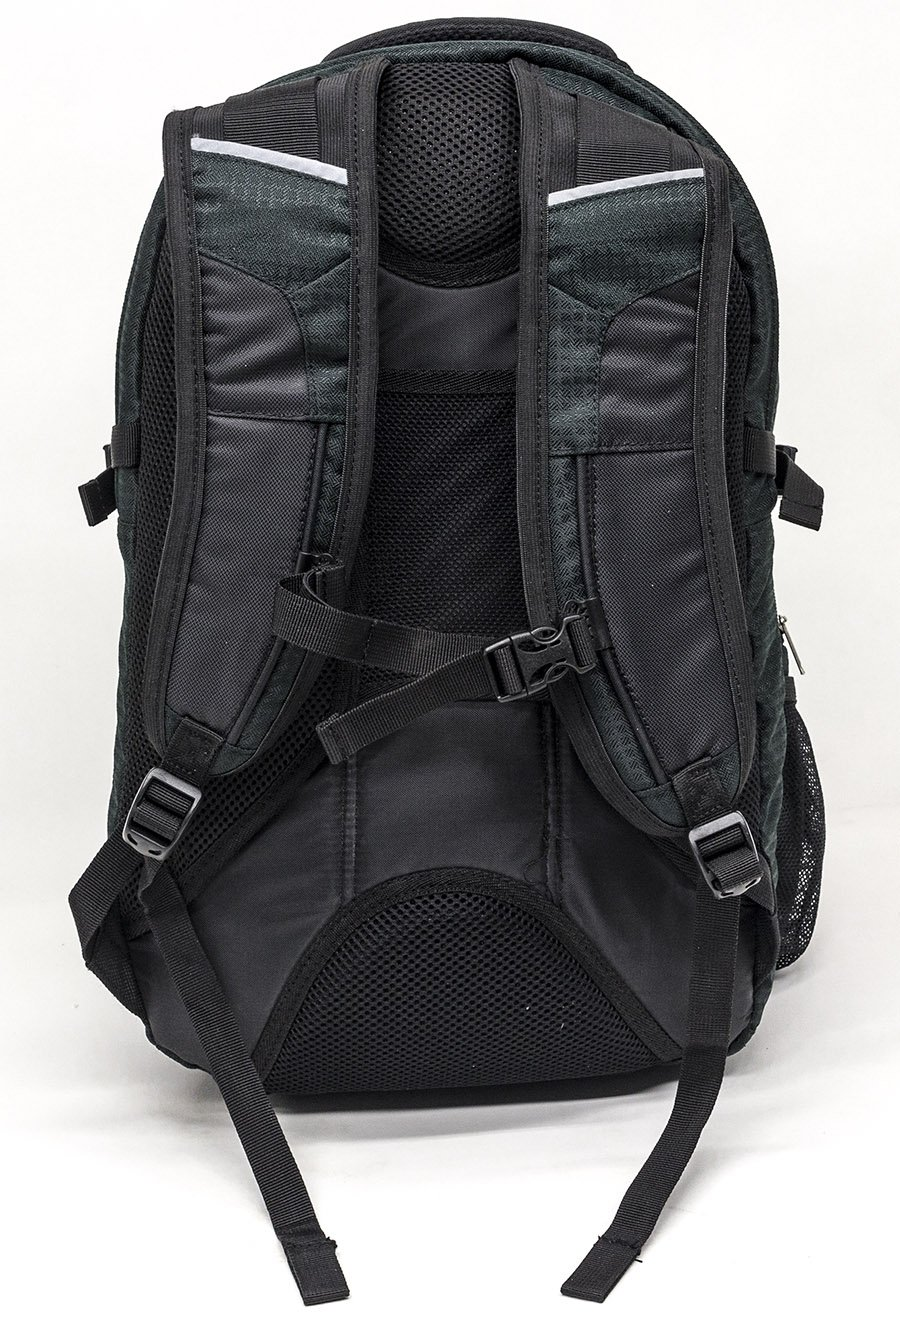 NorthStar Portal Engineer Backpack 28L Capacity Dual Cushioned Laptop & Tablet Compartments